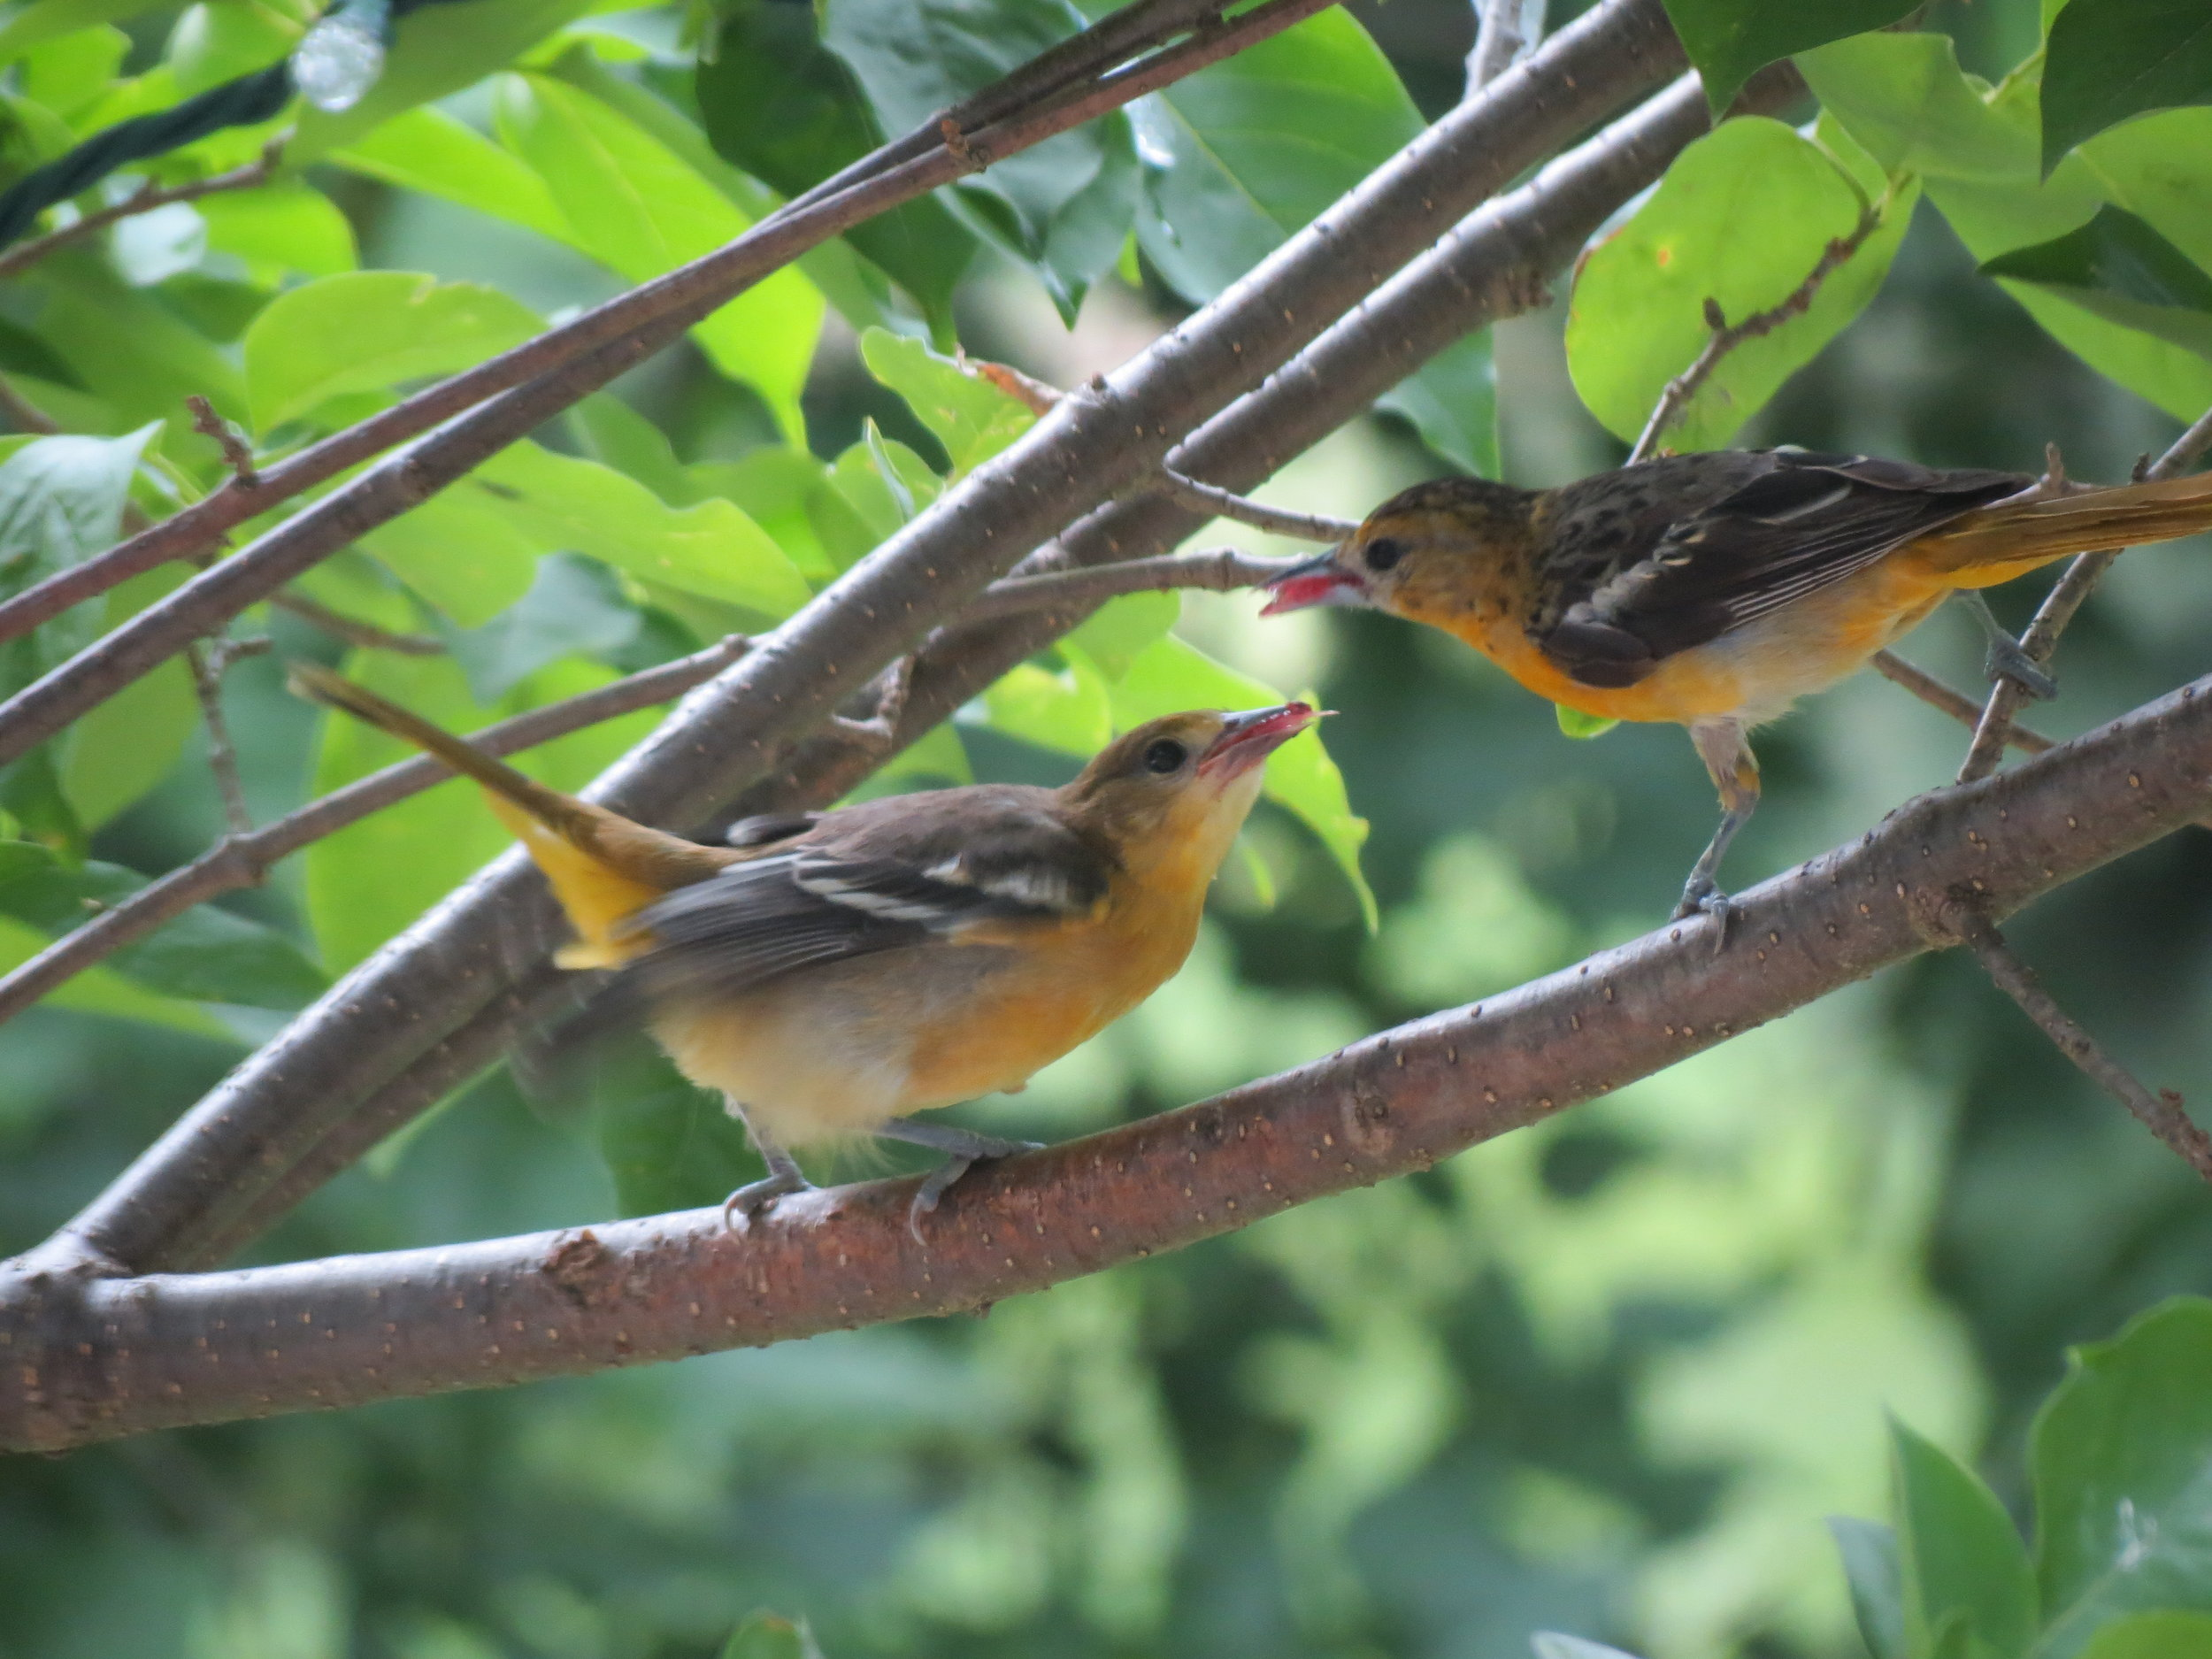 Photo from a previous year,    taken on July 8th    - it won't be long until the Oriole families show up around your feeders if they have been nesting nearby!